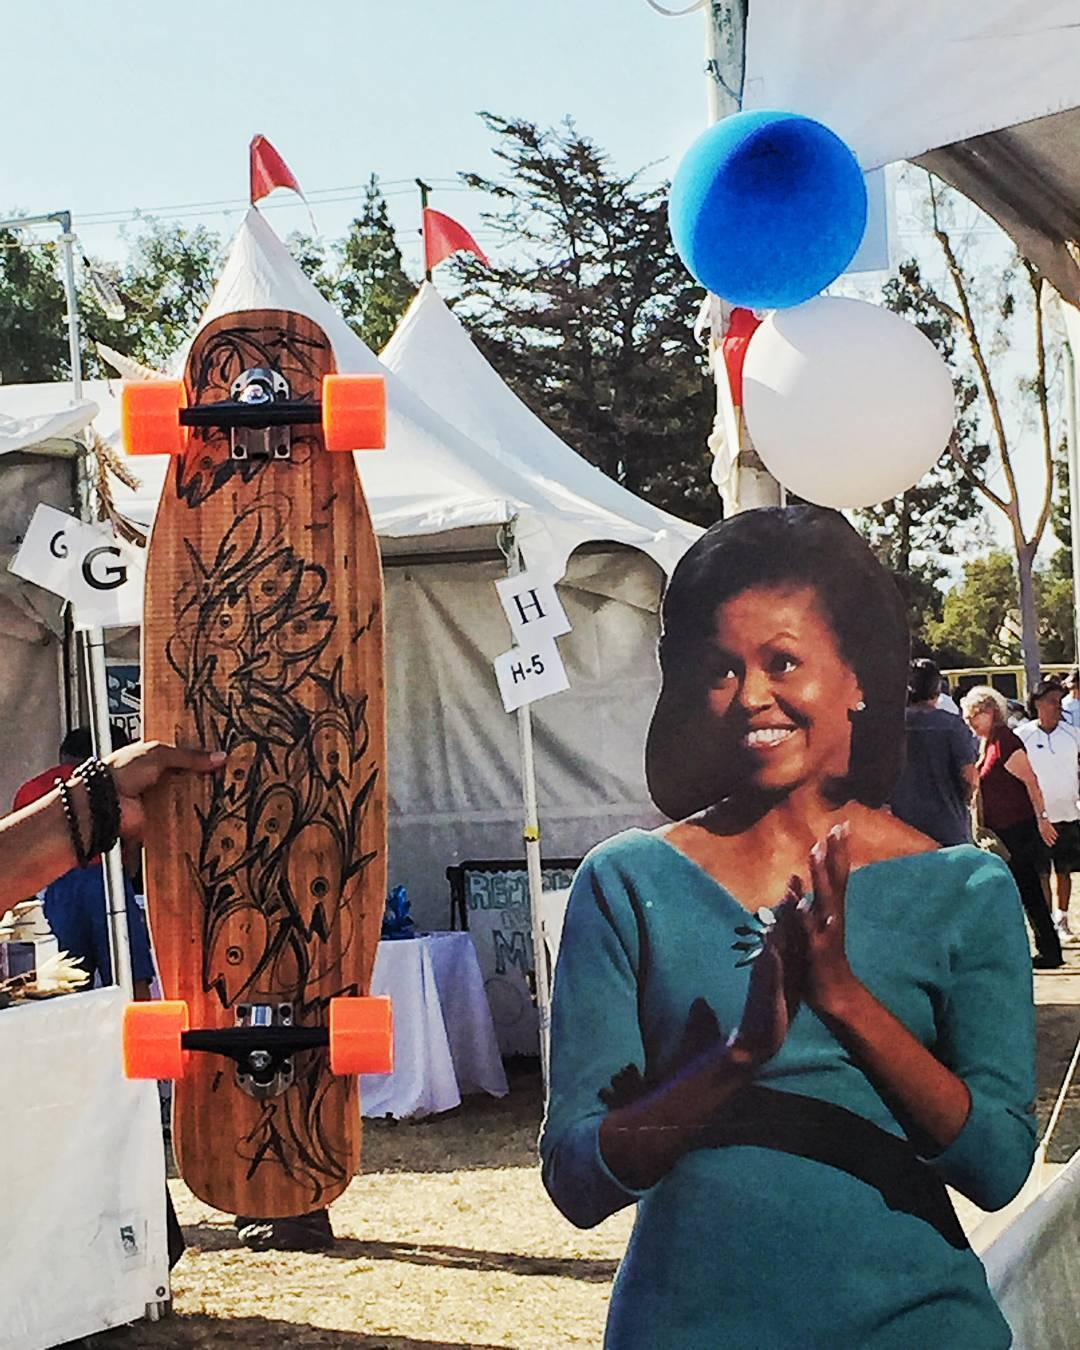 Michelle Obama seemed pretty stoked when we were handing her this Loaded Poke at the Fiesta La Ballona in Culver City this weekend. Such poise. Much composure. Very excite.  Her husband was no where to be found, last we saw he ran off with one of our...